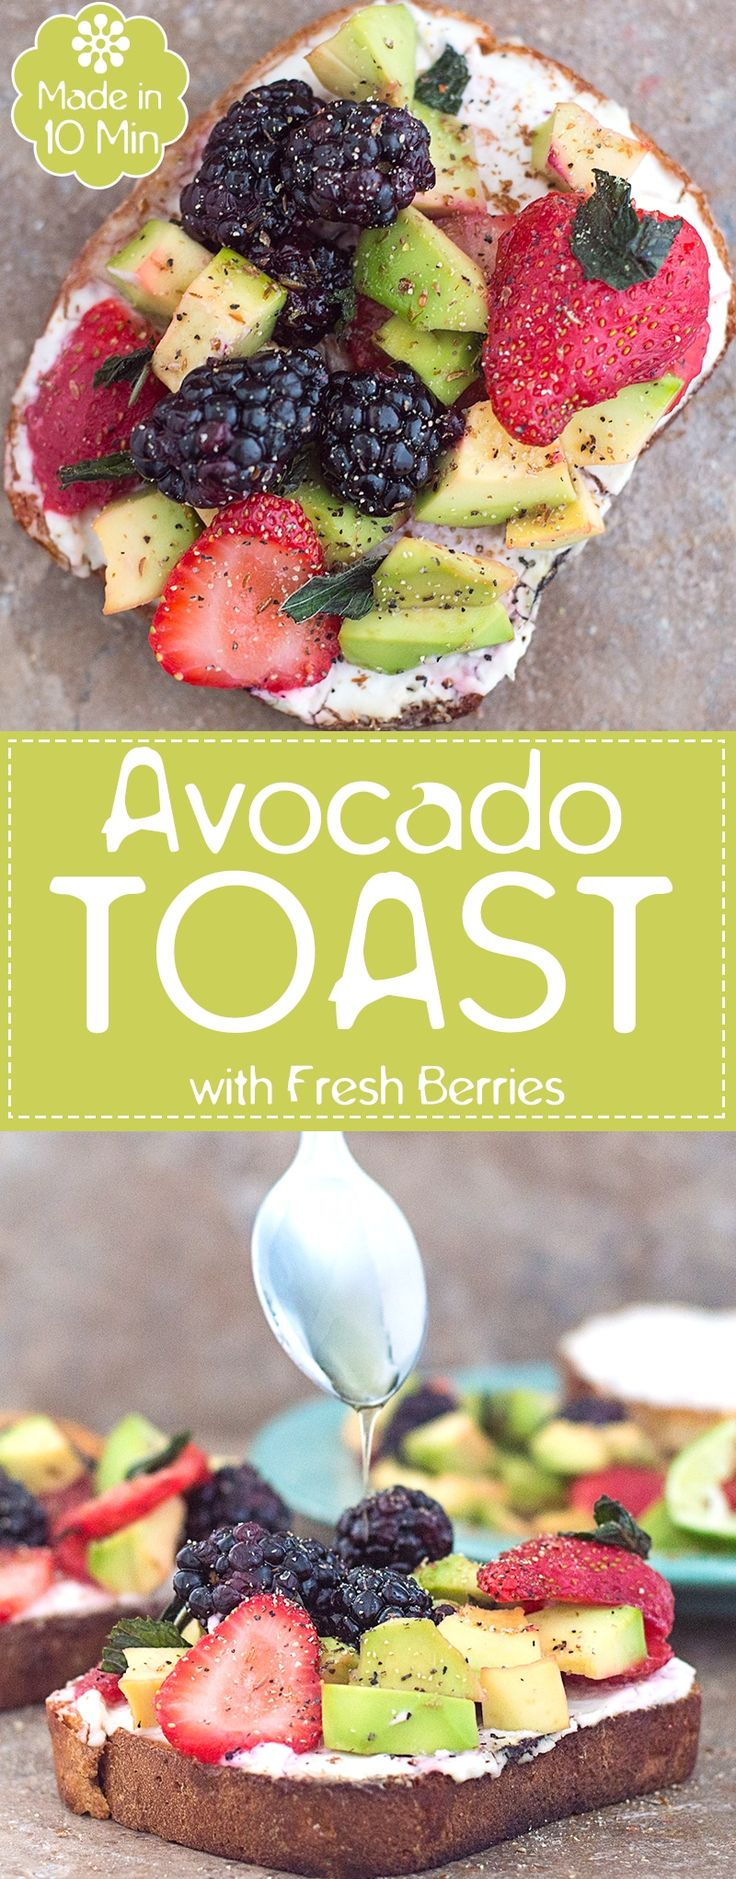 This is a Quick Avocado Toast Recipes with Vegan Cream Cheese Spread. Topped with Fresh Strawberries and Blackberries, Flavored with Agave and Lime Juice #ad #MorningsWithSwirl #BakedWithCare | Quick breakfast, easy breakfast, vegan breakfast, breakfast for kids